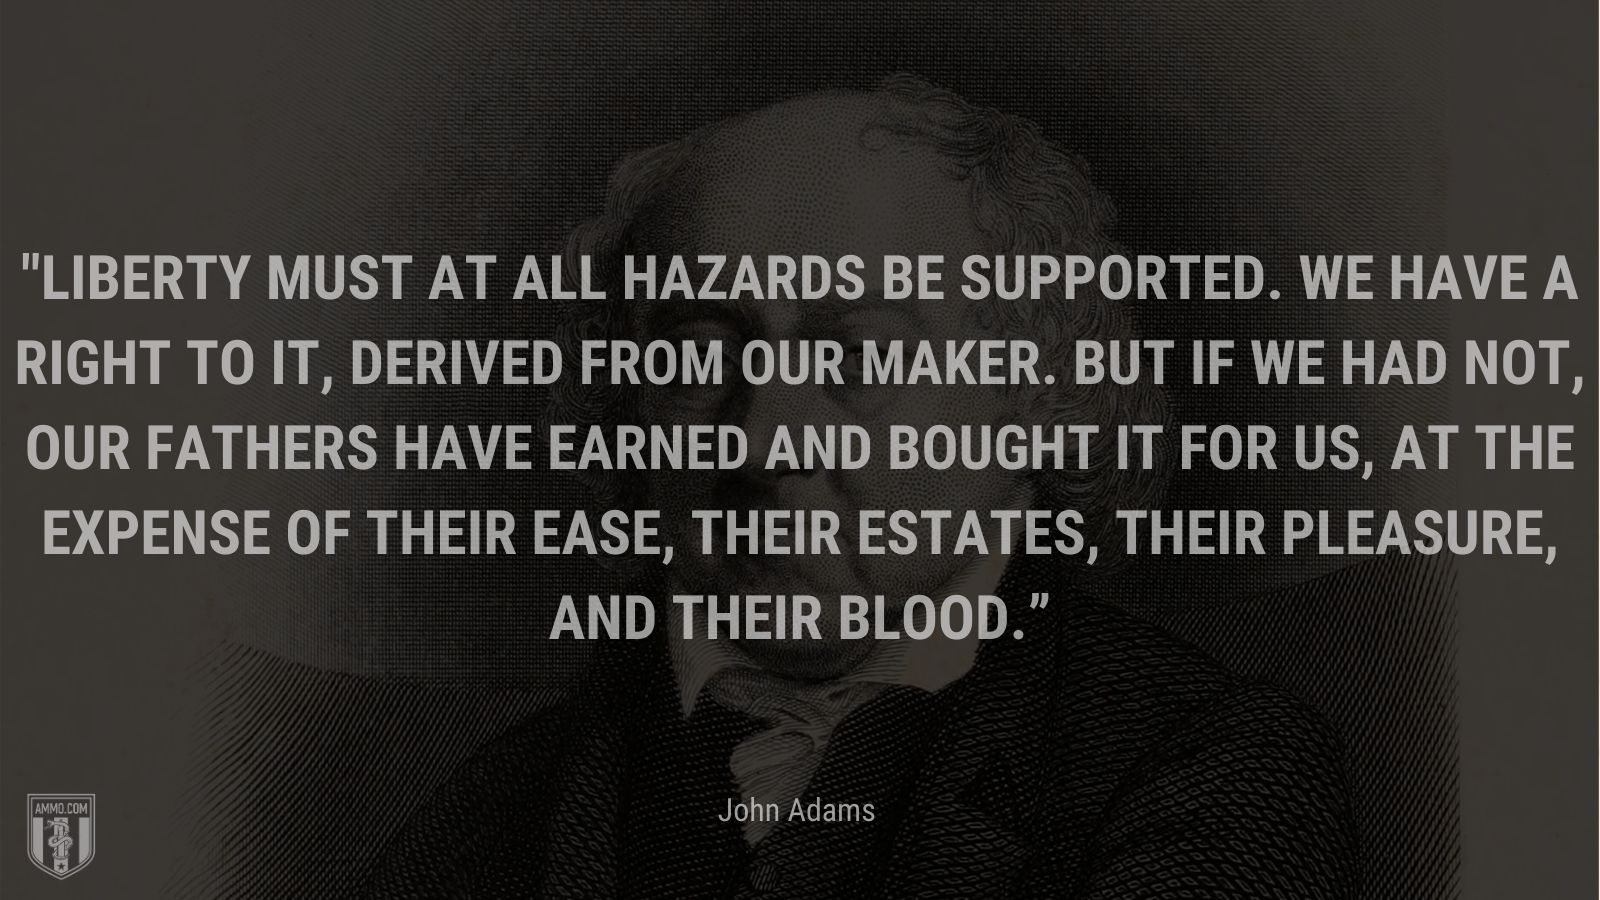 """""""Liberty must at all hazards be supported. We have a right to it, derived from our Maker. But if we had not, our fathers have earned and bought it for us, at the expense of their ease, their estates, their pleasure, and their blood."""" - John Adams"""